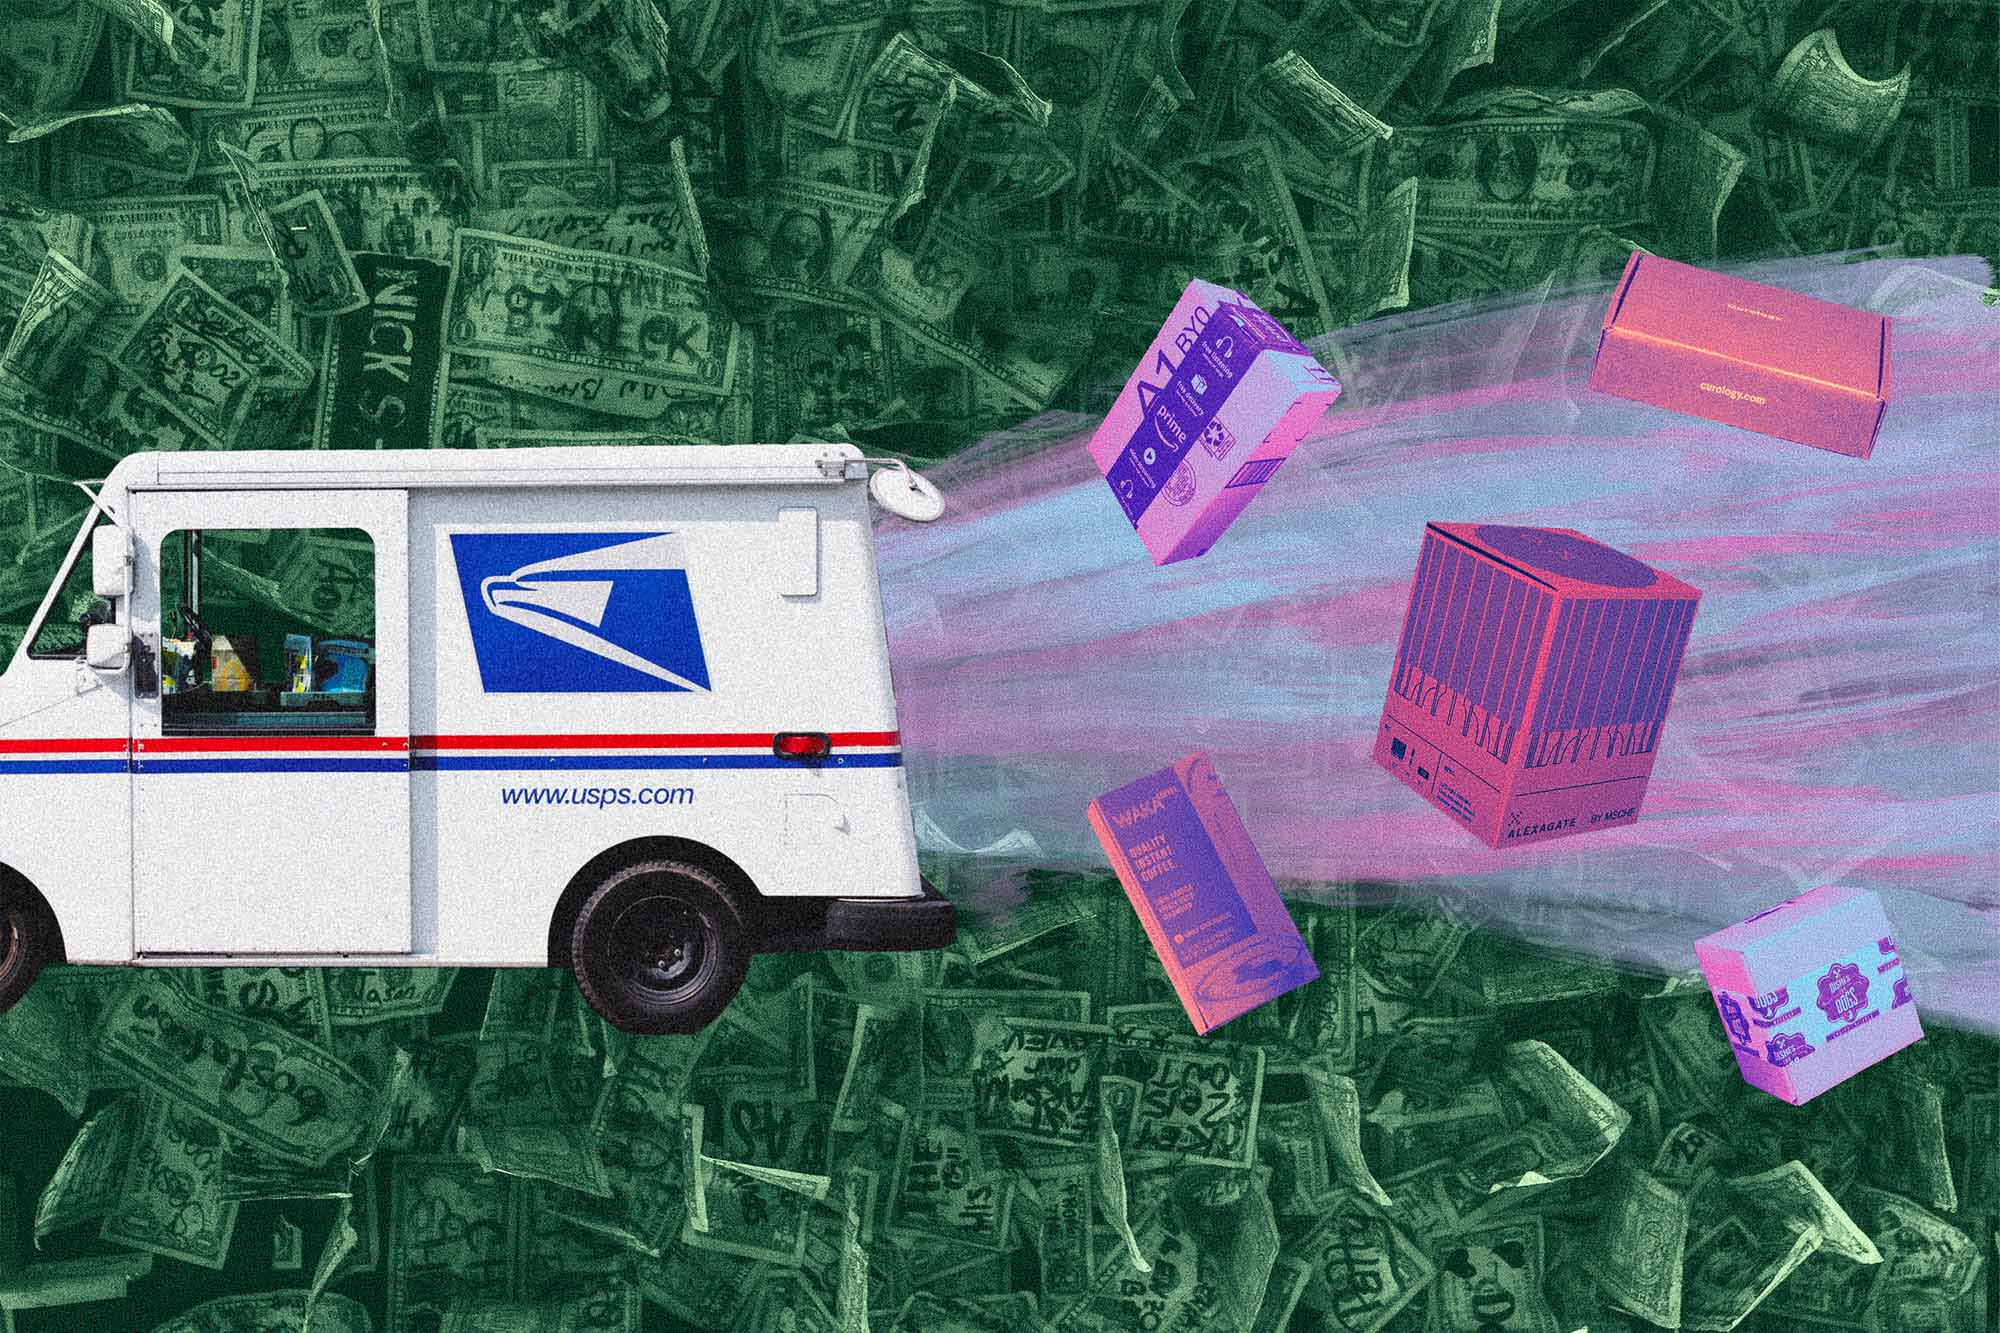 Collage of USPS truck and boxes flying out the back